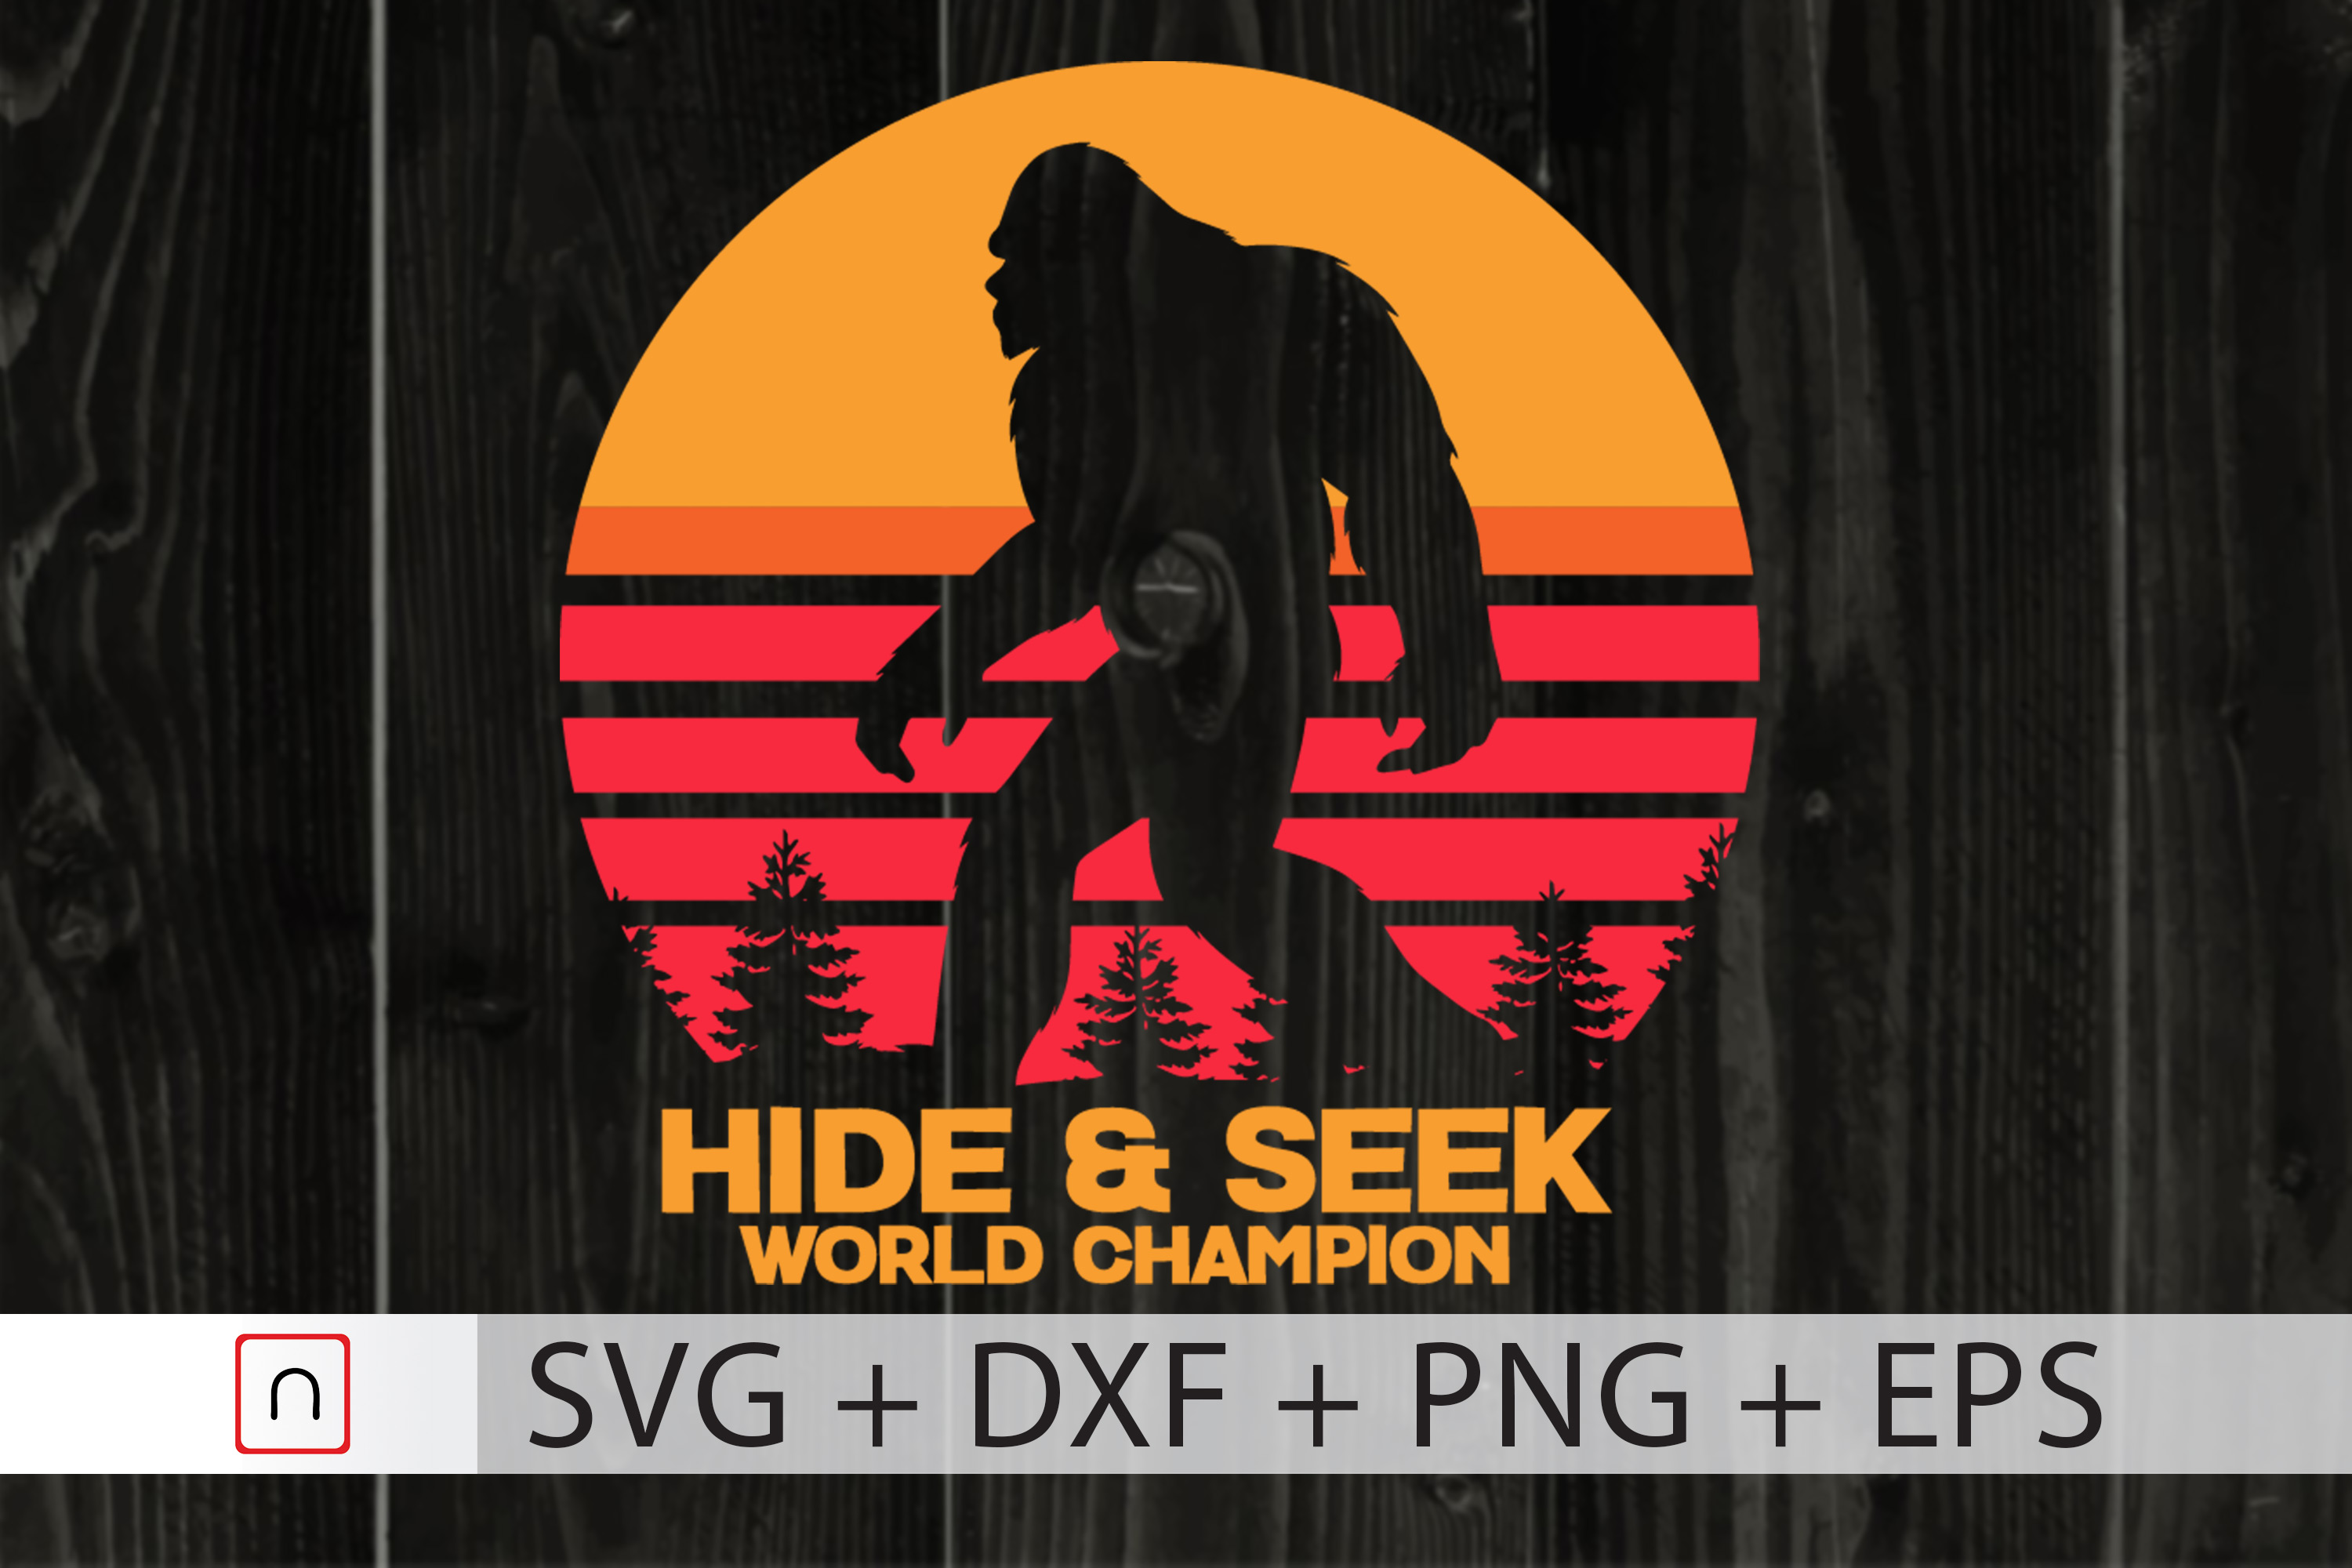 Download Free Hide And Seek World Champion Bigfoot Graphic By Novalia for Cricut Explore, Silhouette and other cutting machines.